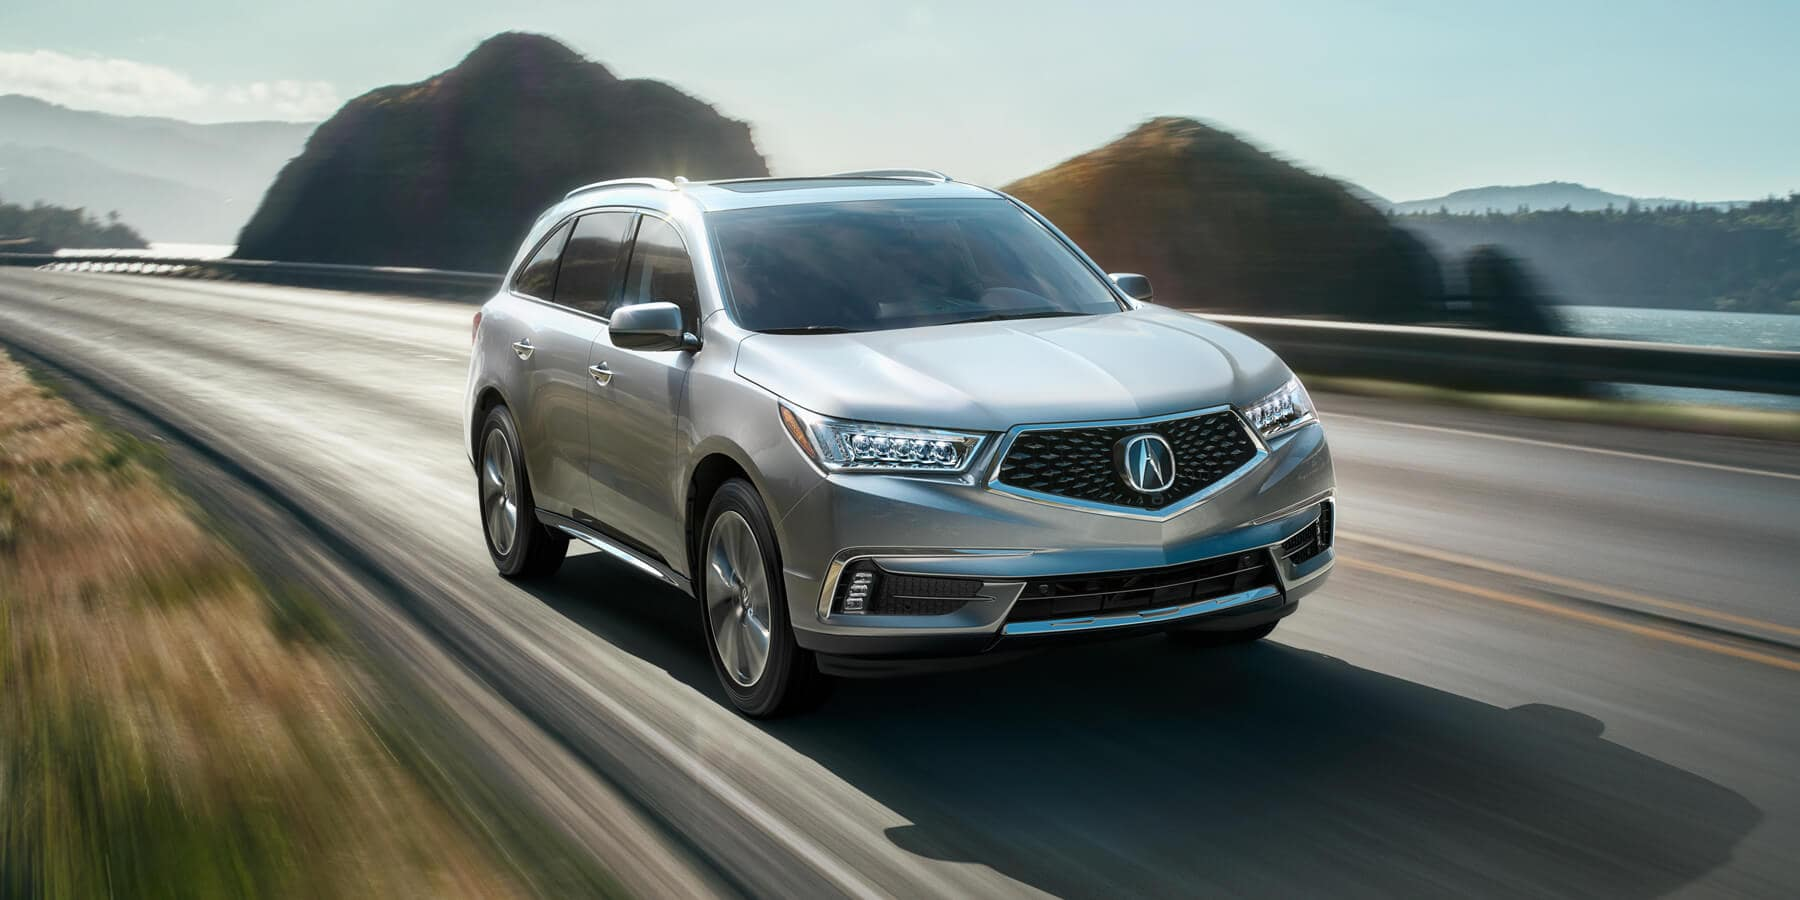 2019 MDX Rocky Mountain Acura Dealers Homepage Background